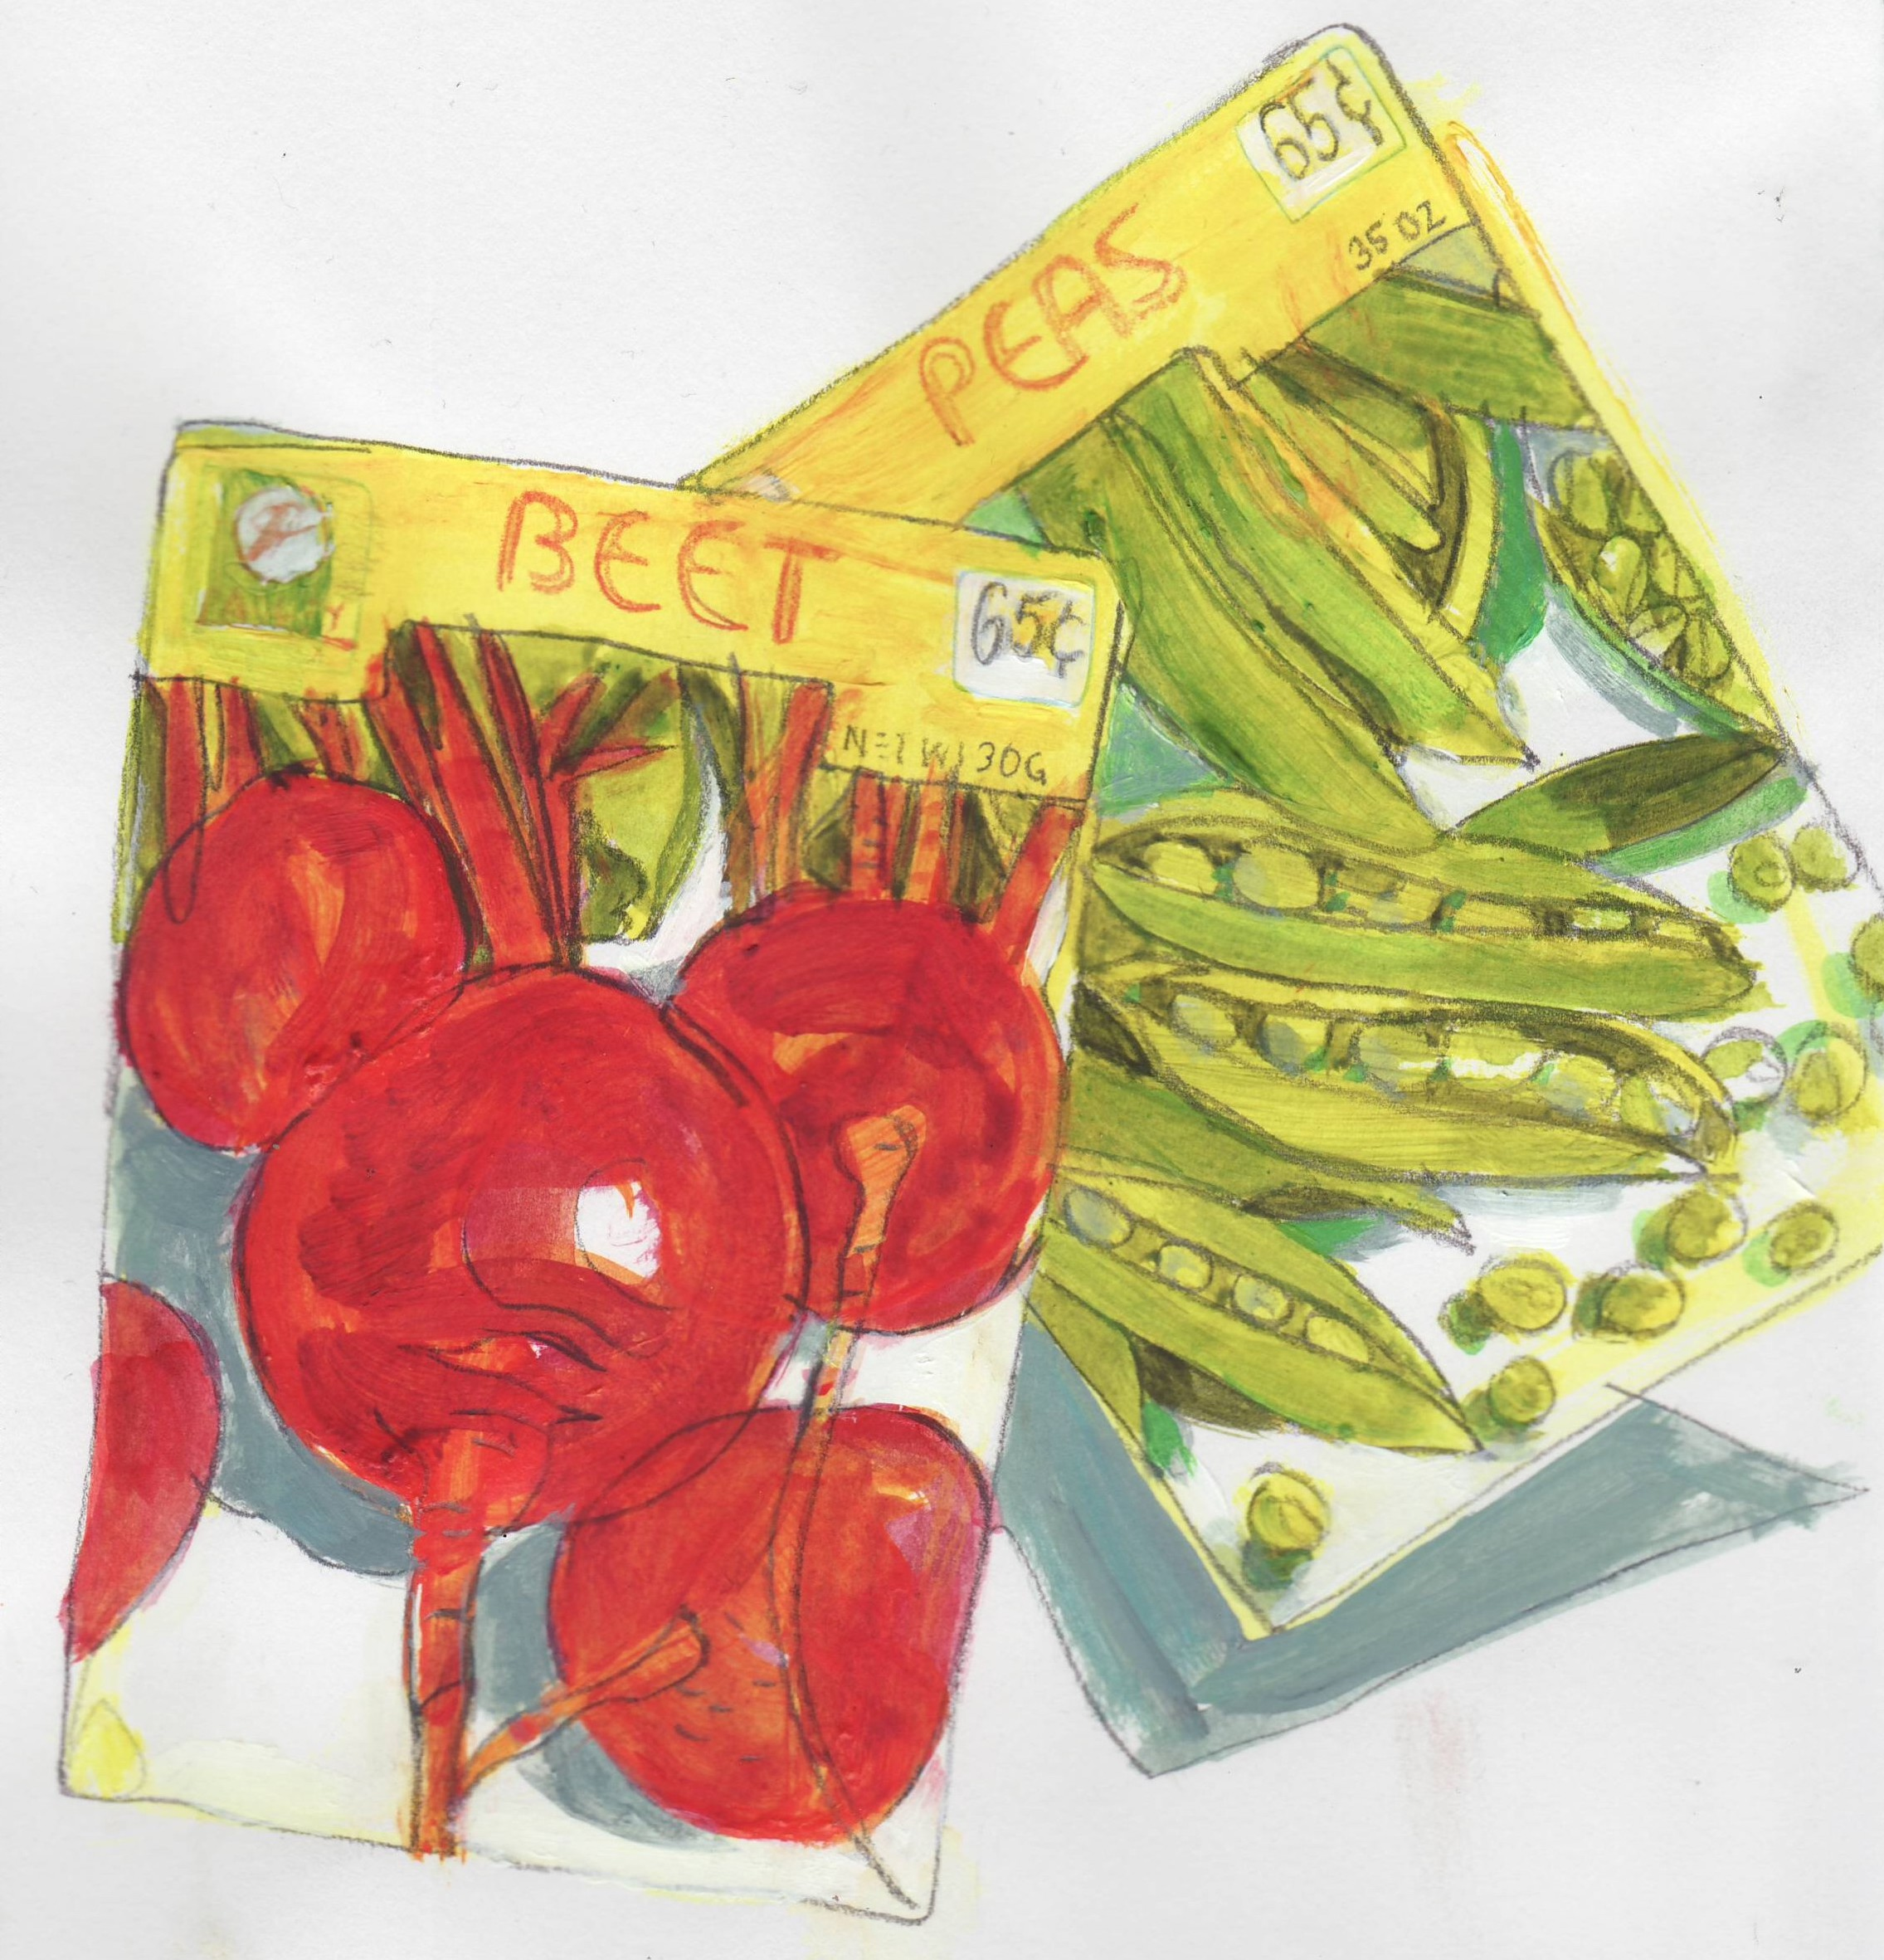 Peas_seed_packets0001